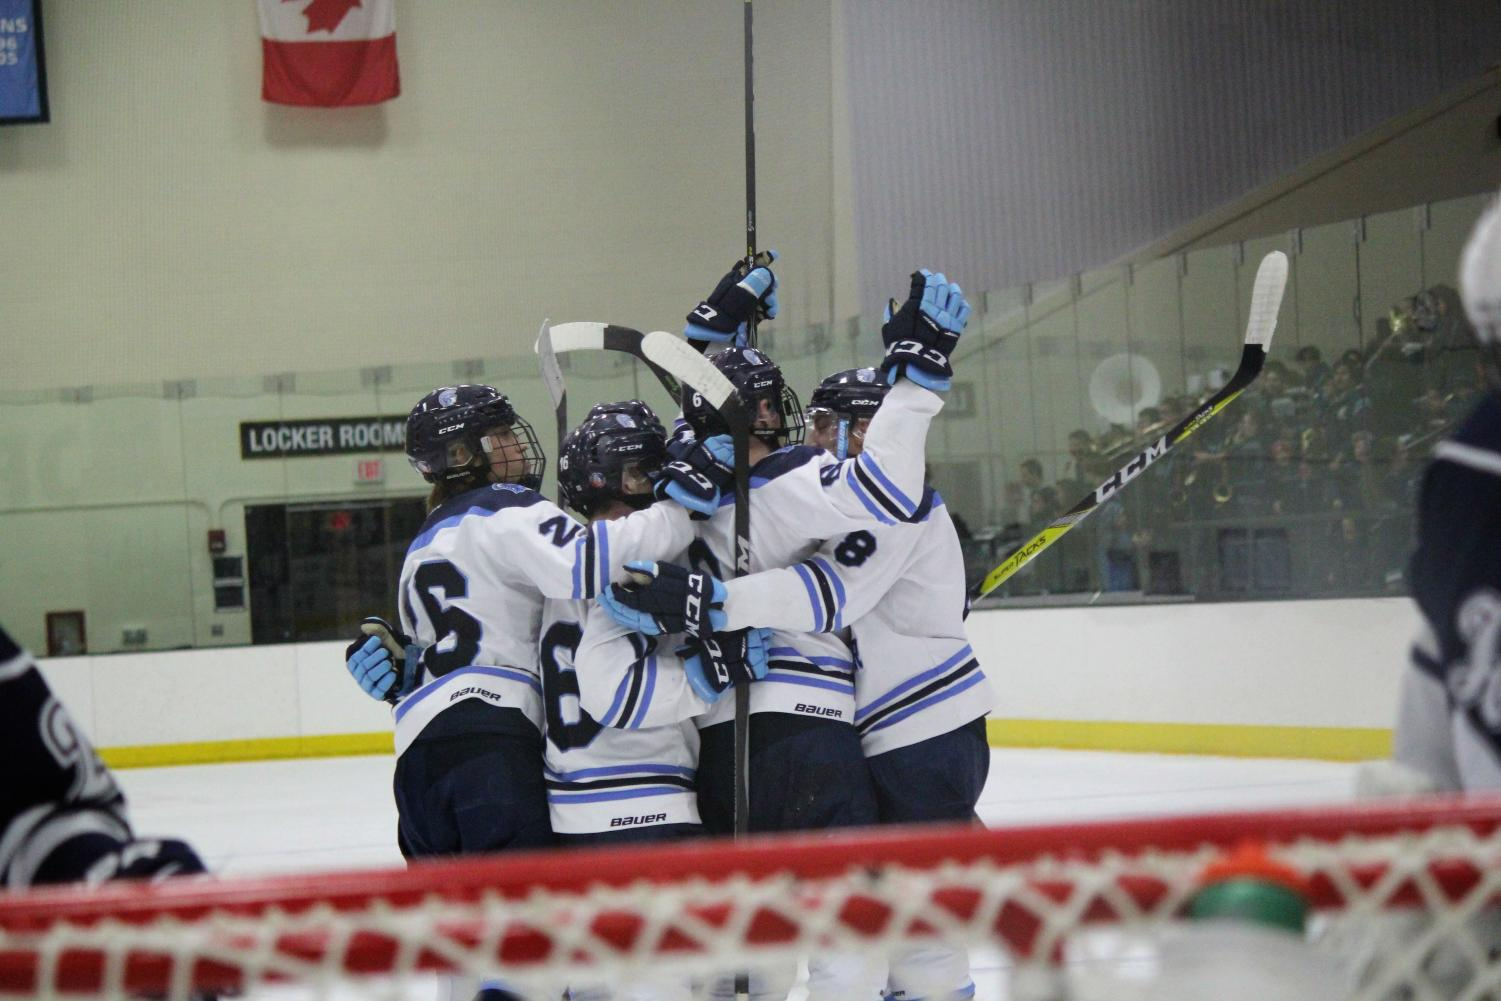 The Spartans celebrating their first goal scored by junior Trevor Dalbec (21)